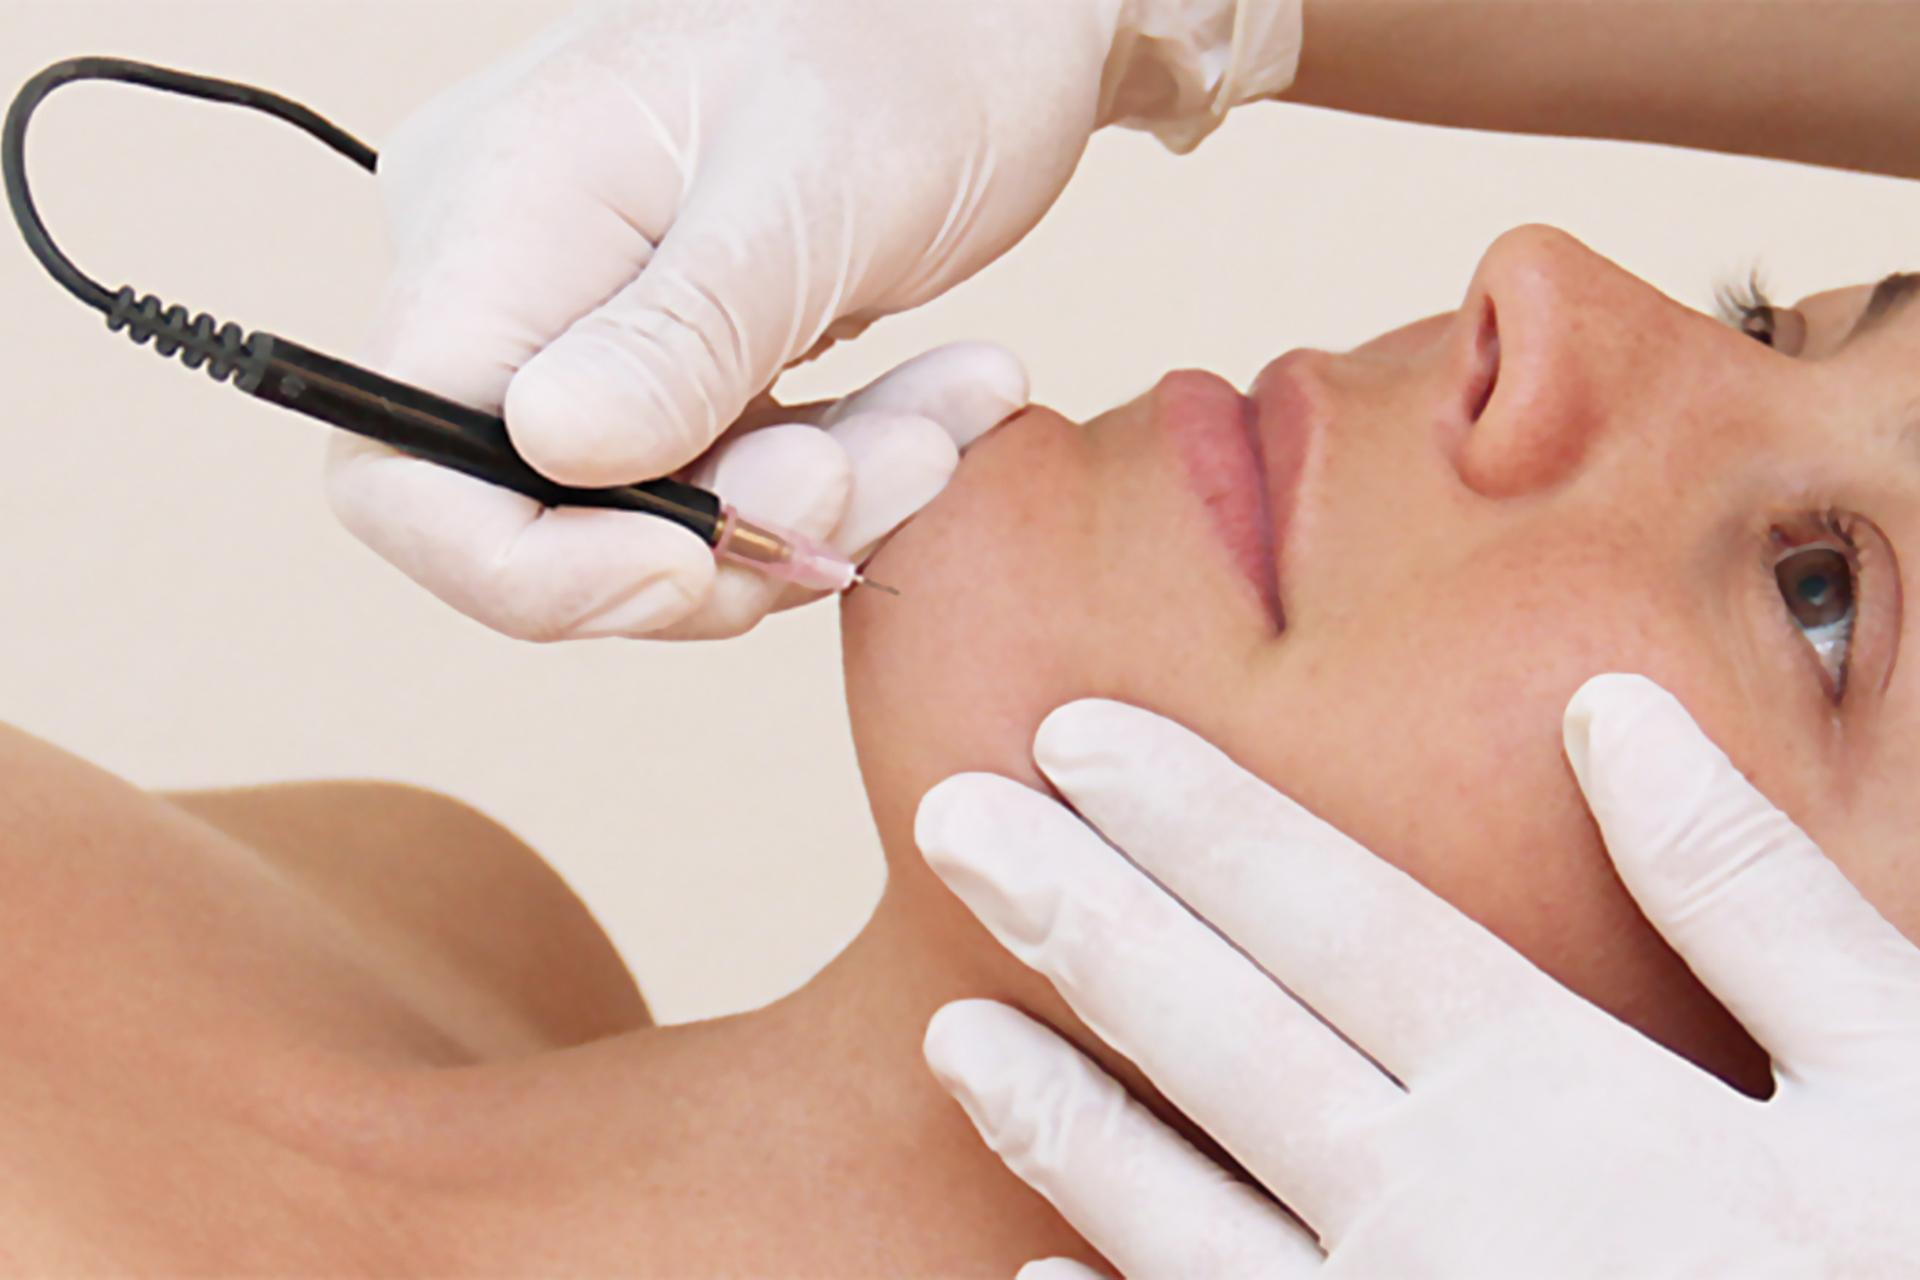 Electrolysis Hair Removal - Electrology is the use of electrical energy to destroy hair germ cells in the papilla. We use The Blend Method, which is a combination of High Frequency & Galvanic Current, directly into the hair follicle.The treatment is a little uncomfortable. When the current is released into the follicle, a slight stinging sensation is felt. The side effects are a little redness & soreness in the area immediately after treatment, which settles down in a few hours.Soothing lotions, aloe vera gel, paw paw ointment or a cool pack can be used to help speed up recovery. Keeping the area clean will avoid infections.This is the traditional method for permanent hair reduction. It is suitable for smaller areas like the face and for blonde or white hair where Intense Pulsed Light or Laser is not applicable.Minimum charge - 10 minutes $30.0030 minute treatment $50.001 hour treatment $90.00